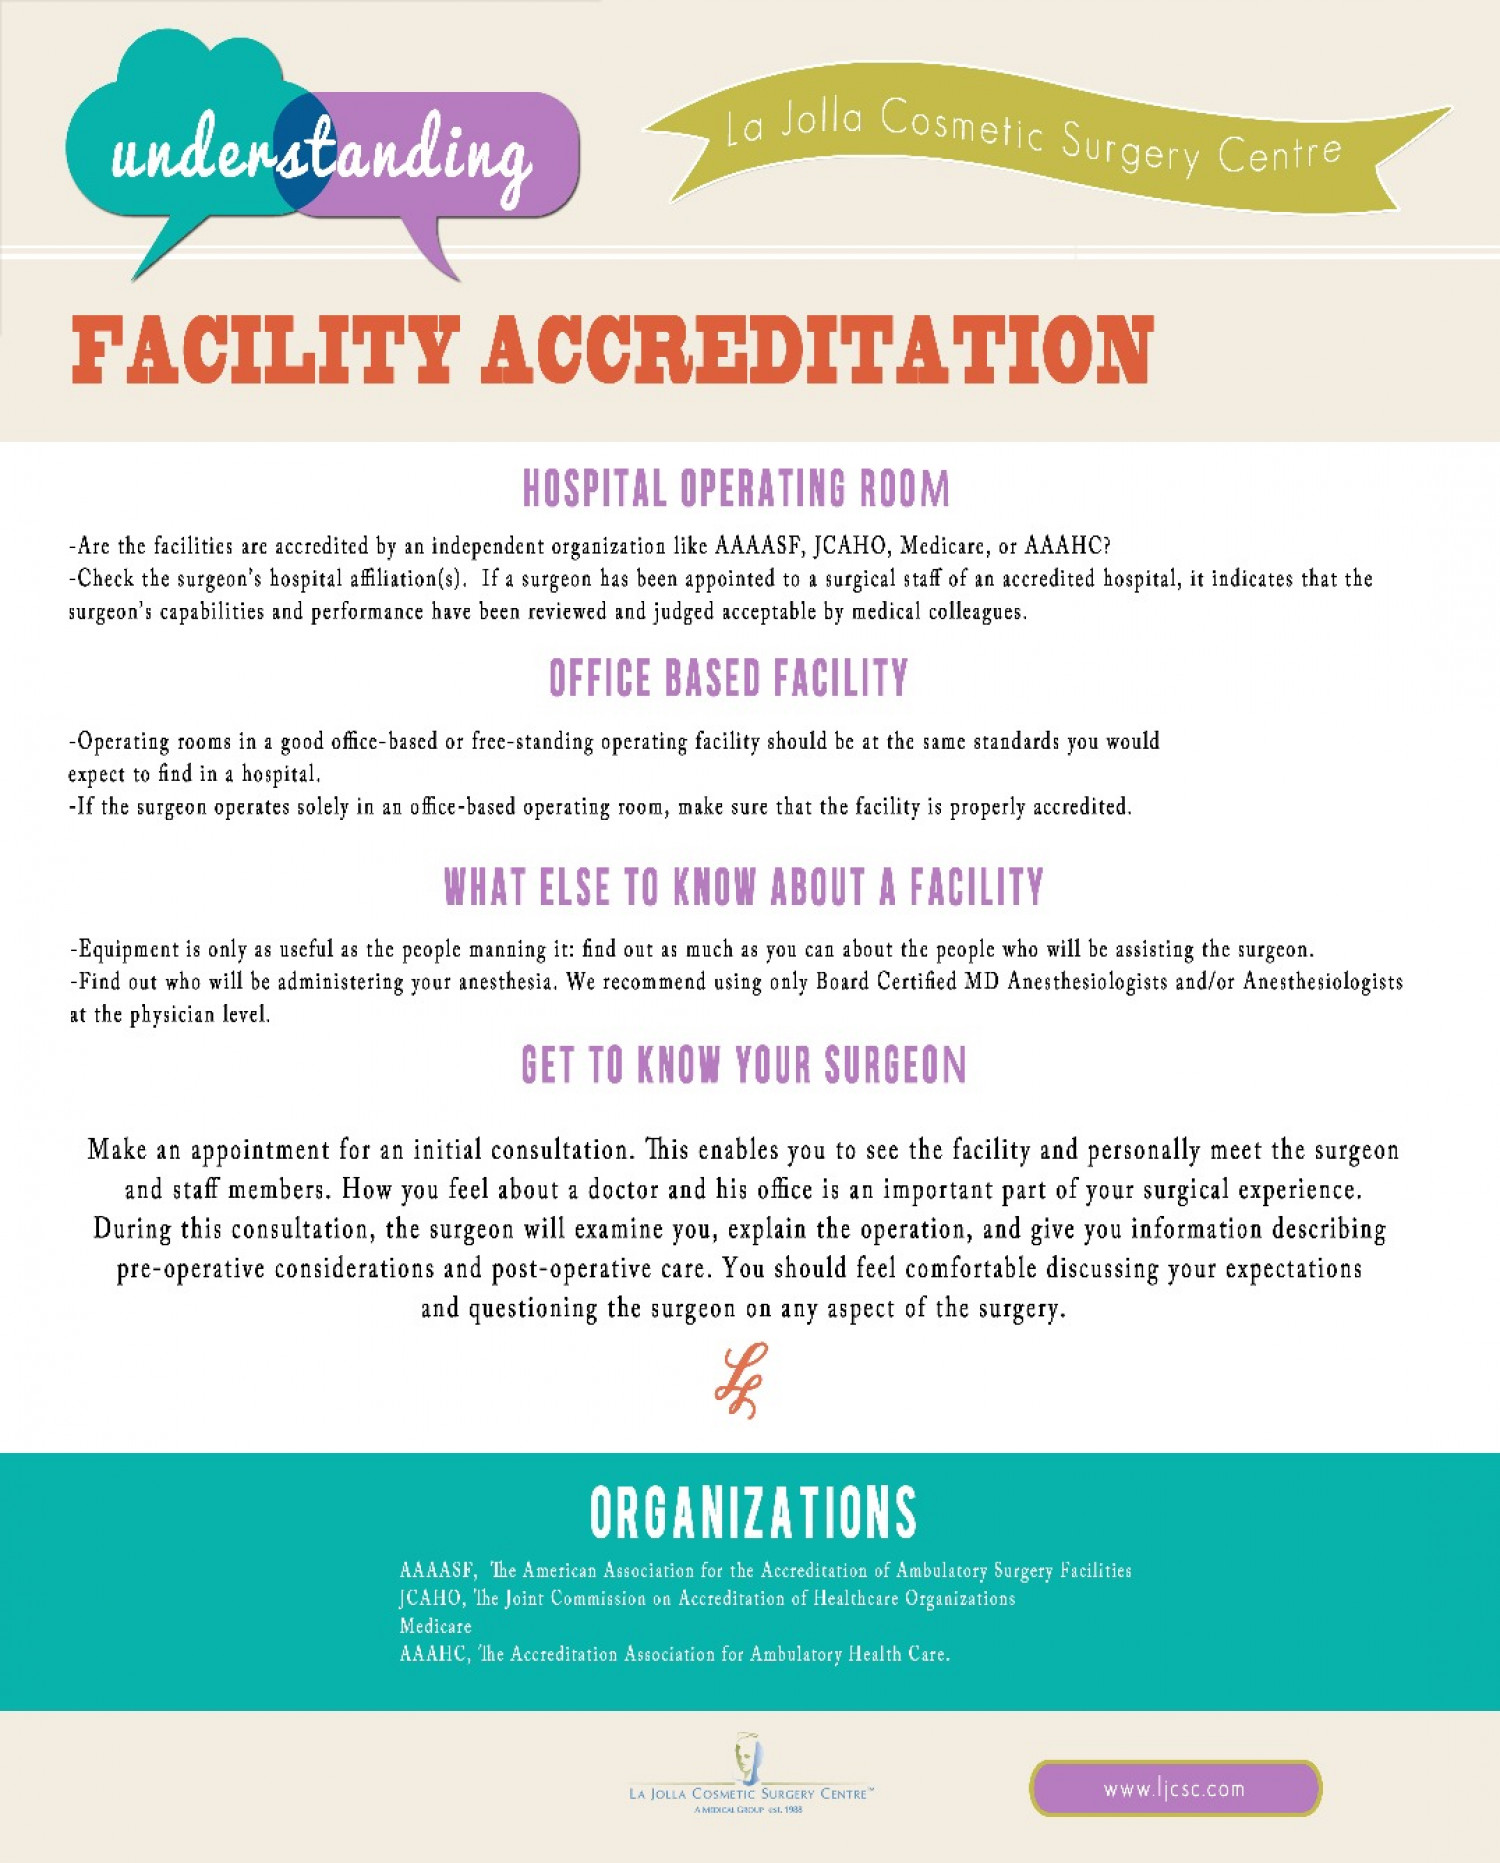 Understanding Facility Accreditation Infographic